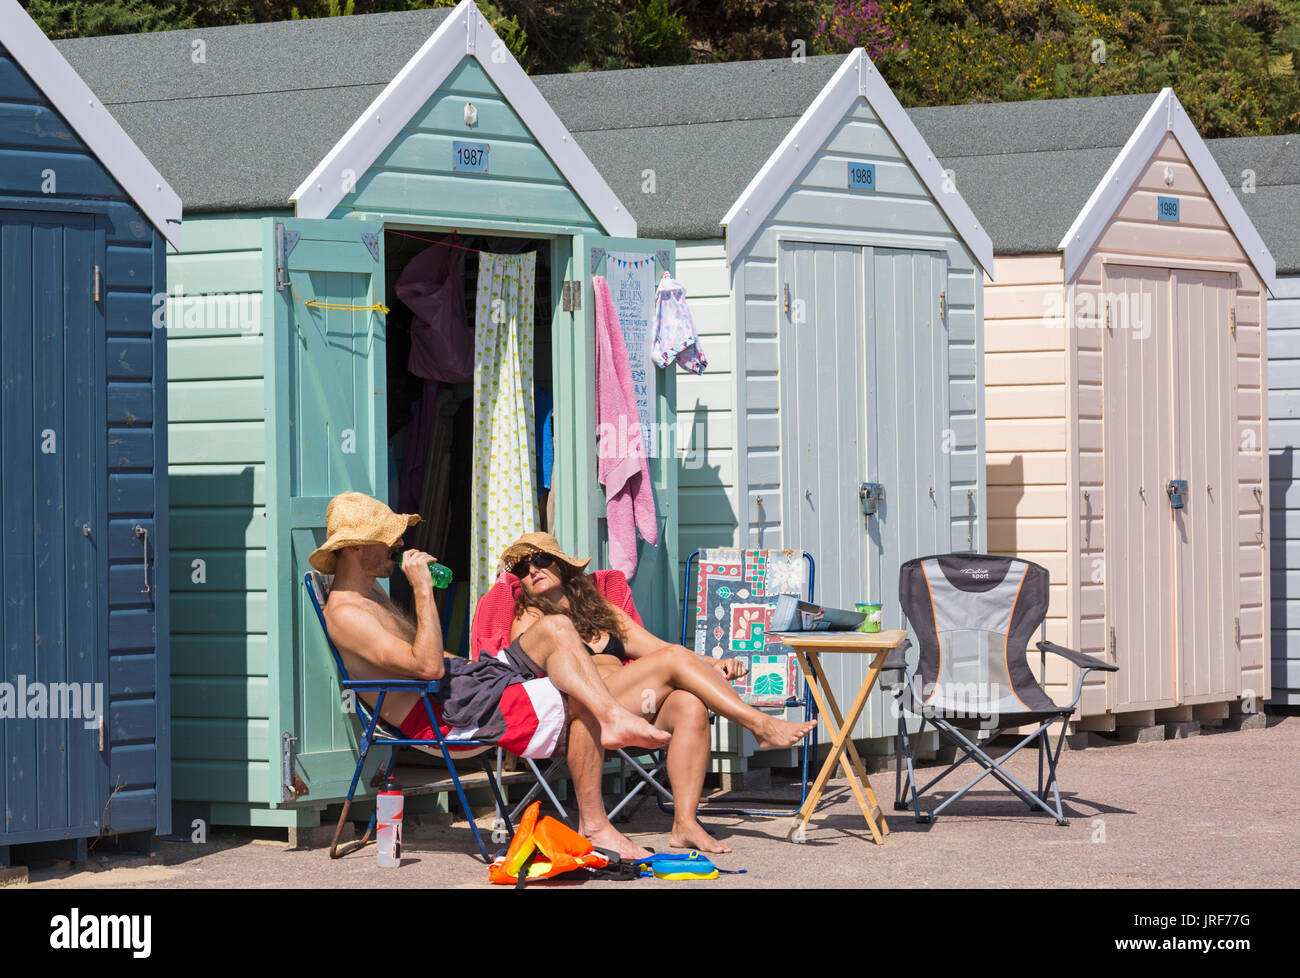 Bournemouth, Dorset, UK. 5th Aug, 2017. UK weather: nice warm sunny afternoon, as visitors head to the seaside to make the most of the sunshine at Alum Chine beach. Couple relaxing outside beach huts enjoying the sunshine. Credit: Carolyn Jenkins/Alamy Live News Stock Photo